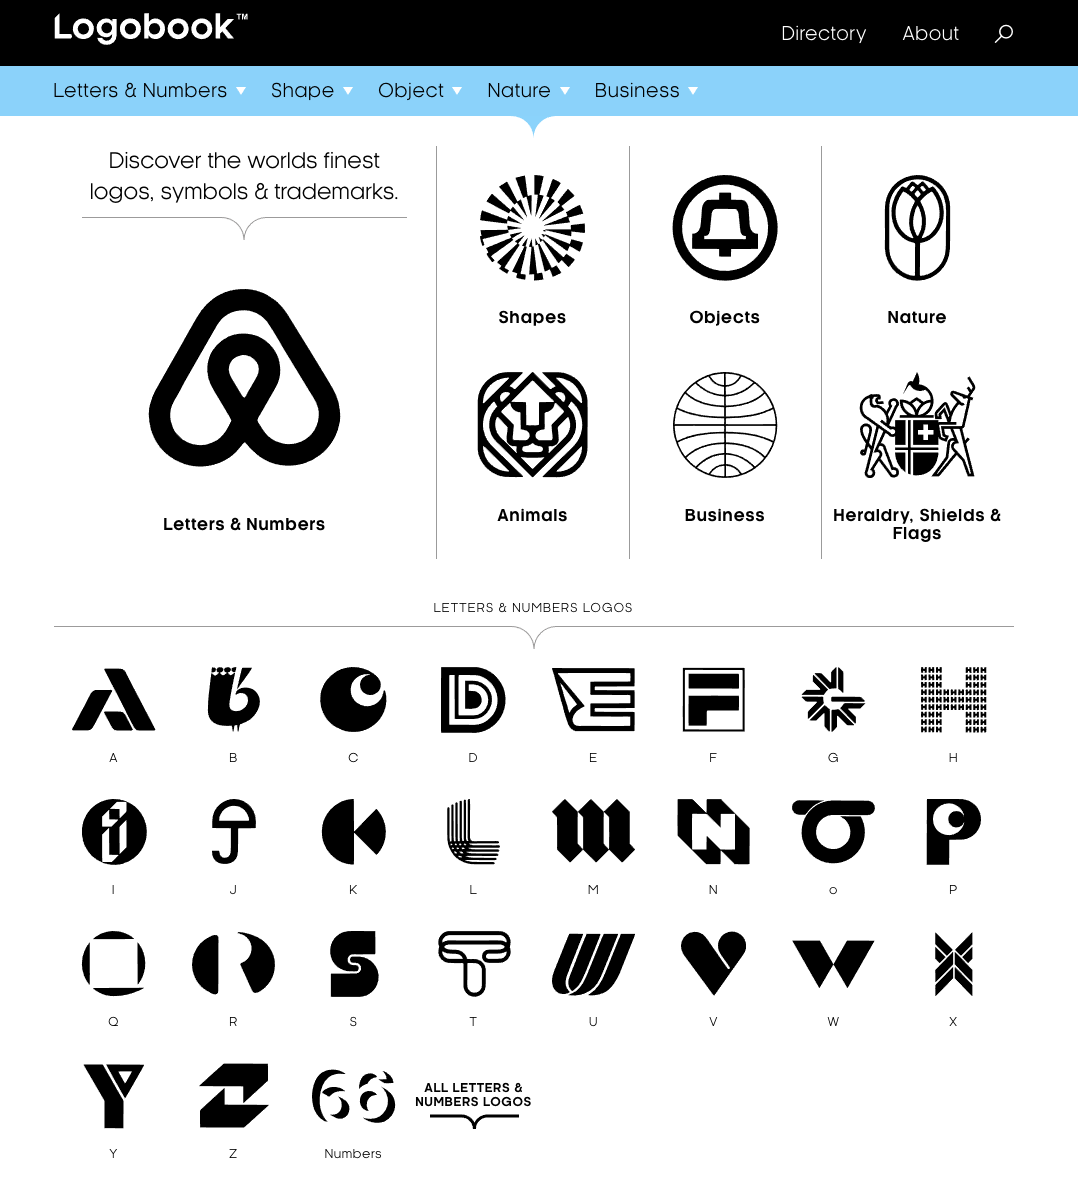 Logobook is a showcase of the finest logos, symbols